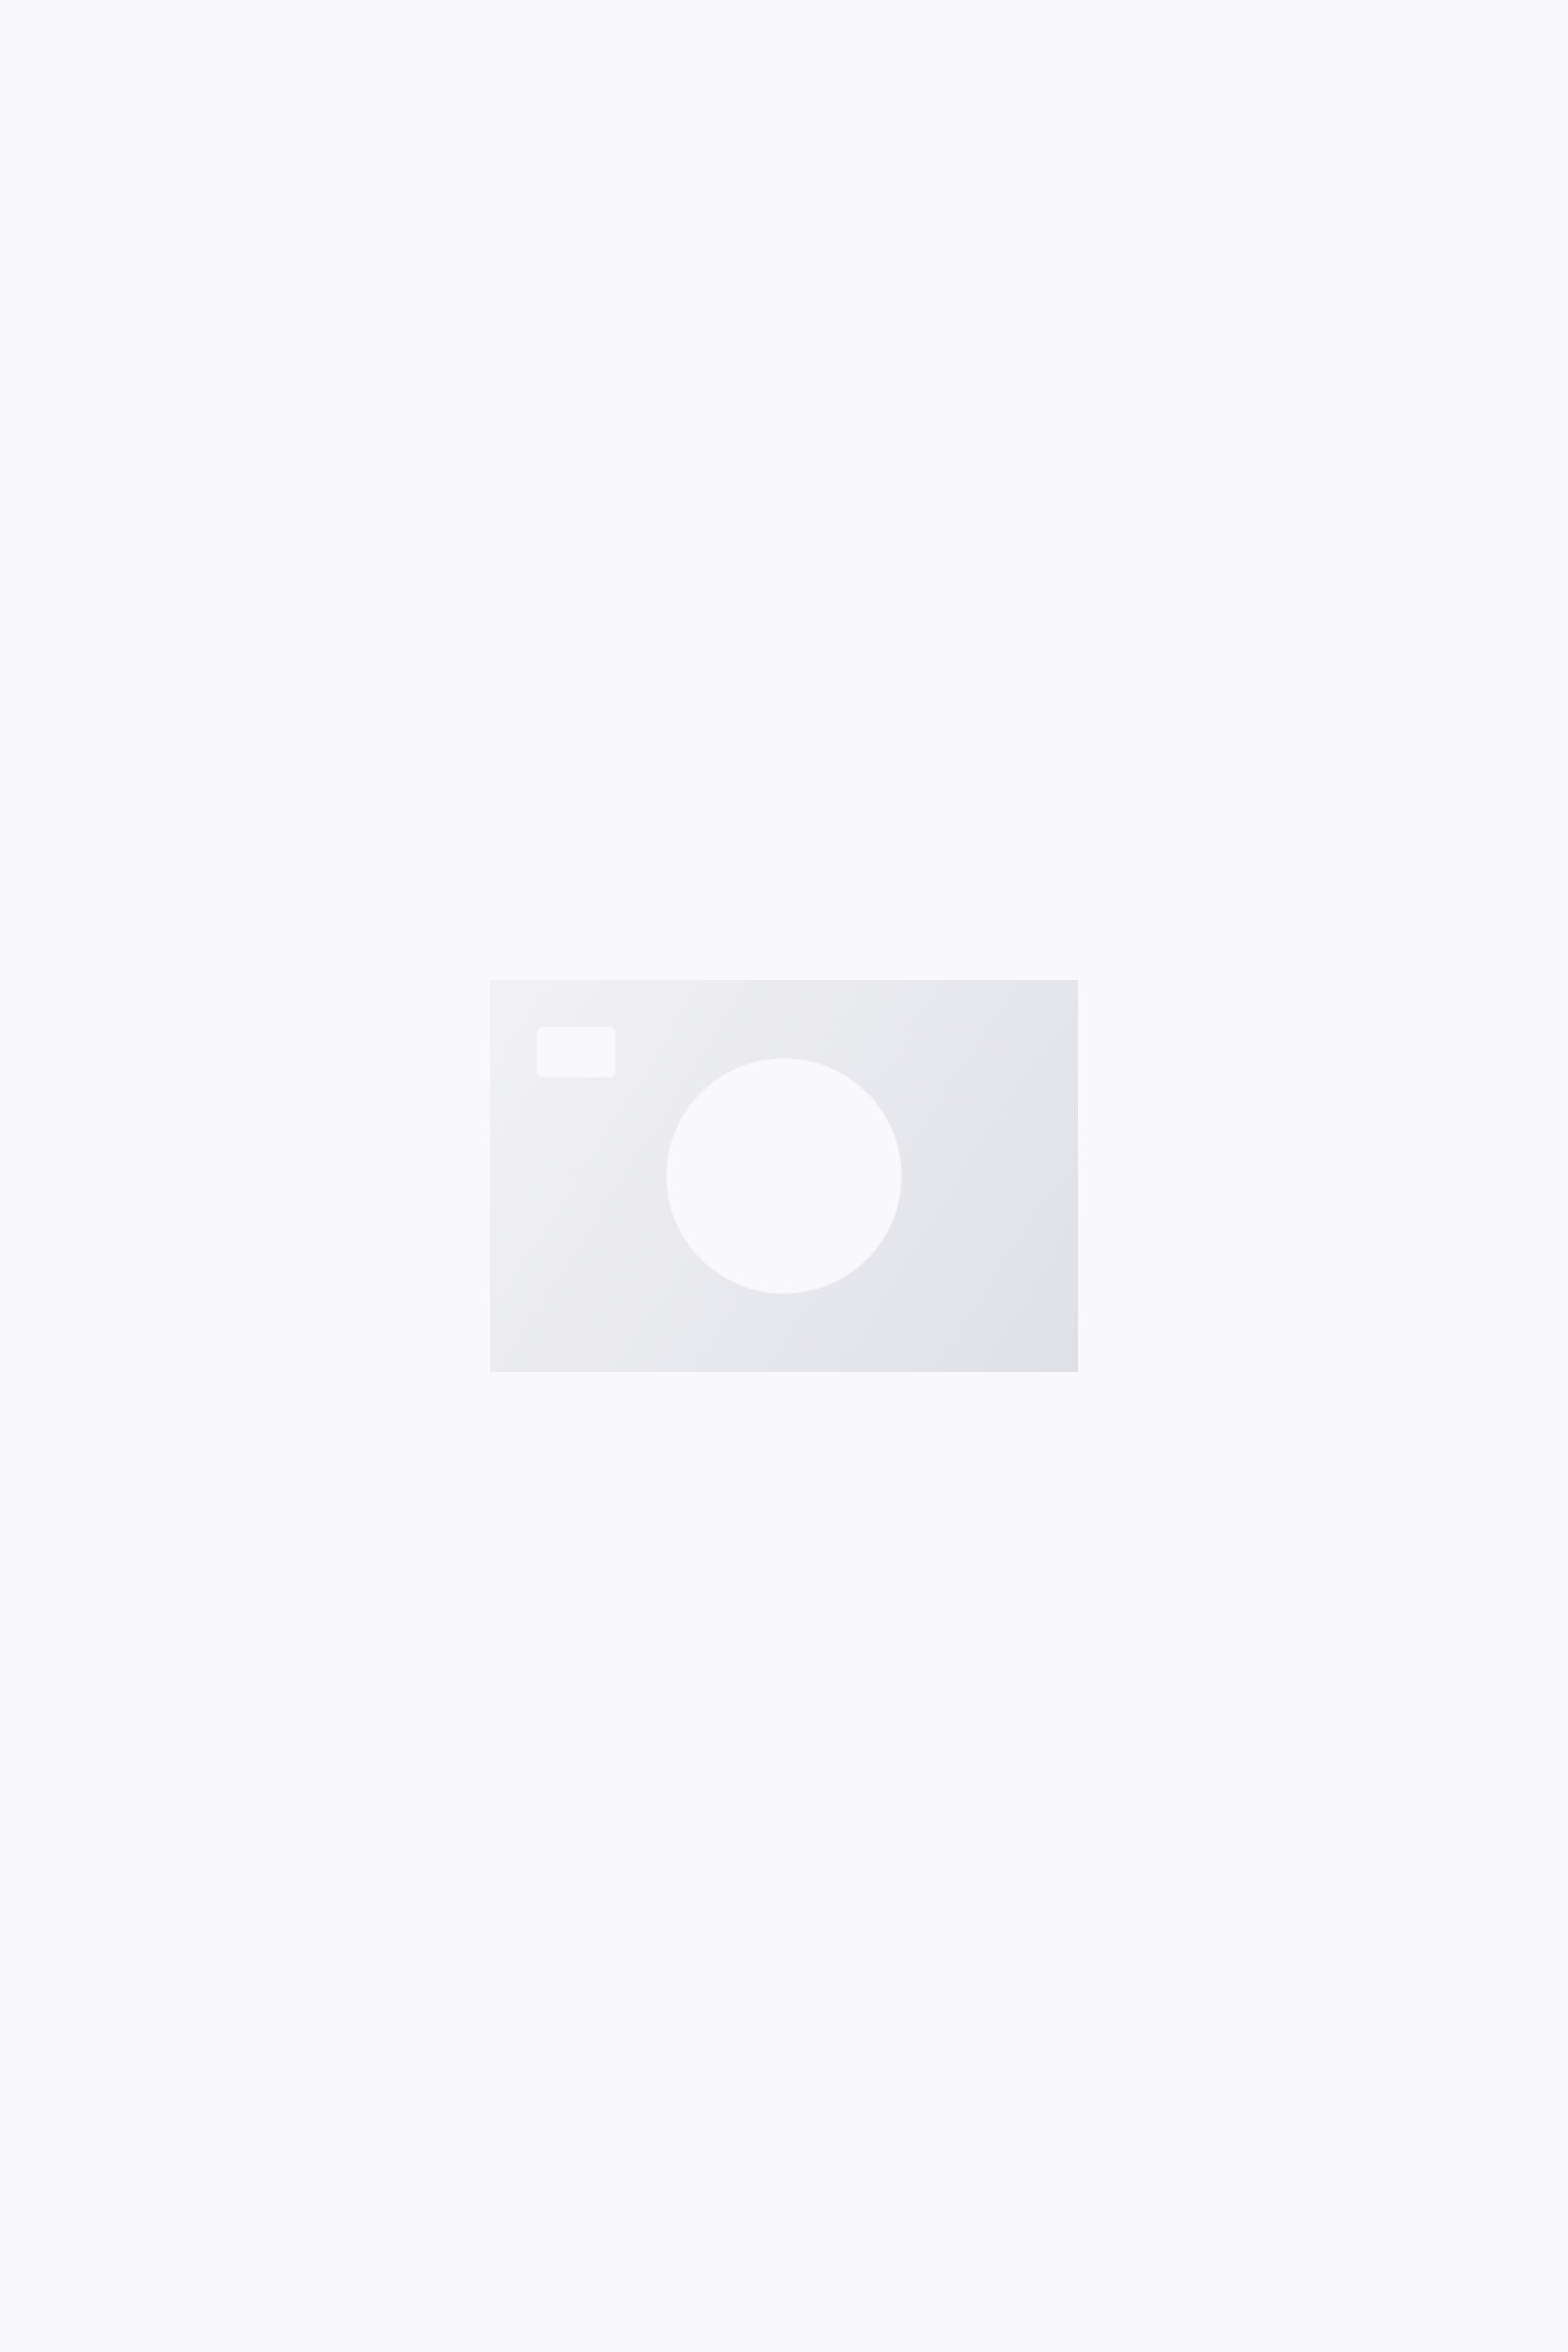 COS JERSEY OVERSHIRT,navy